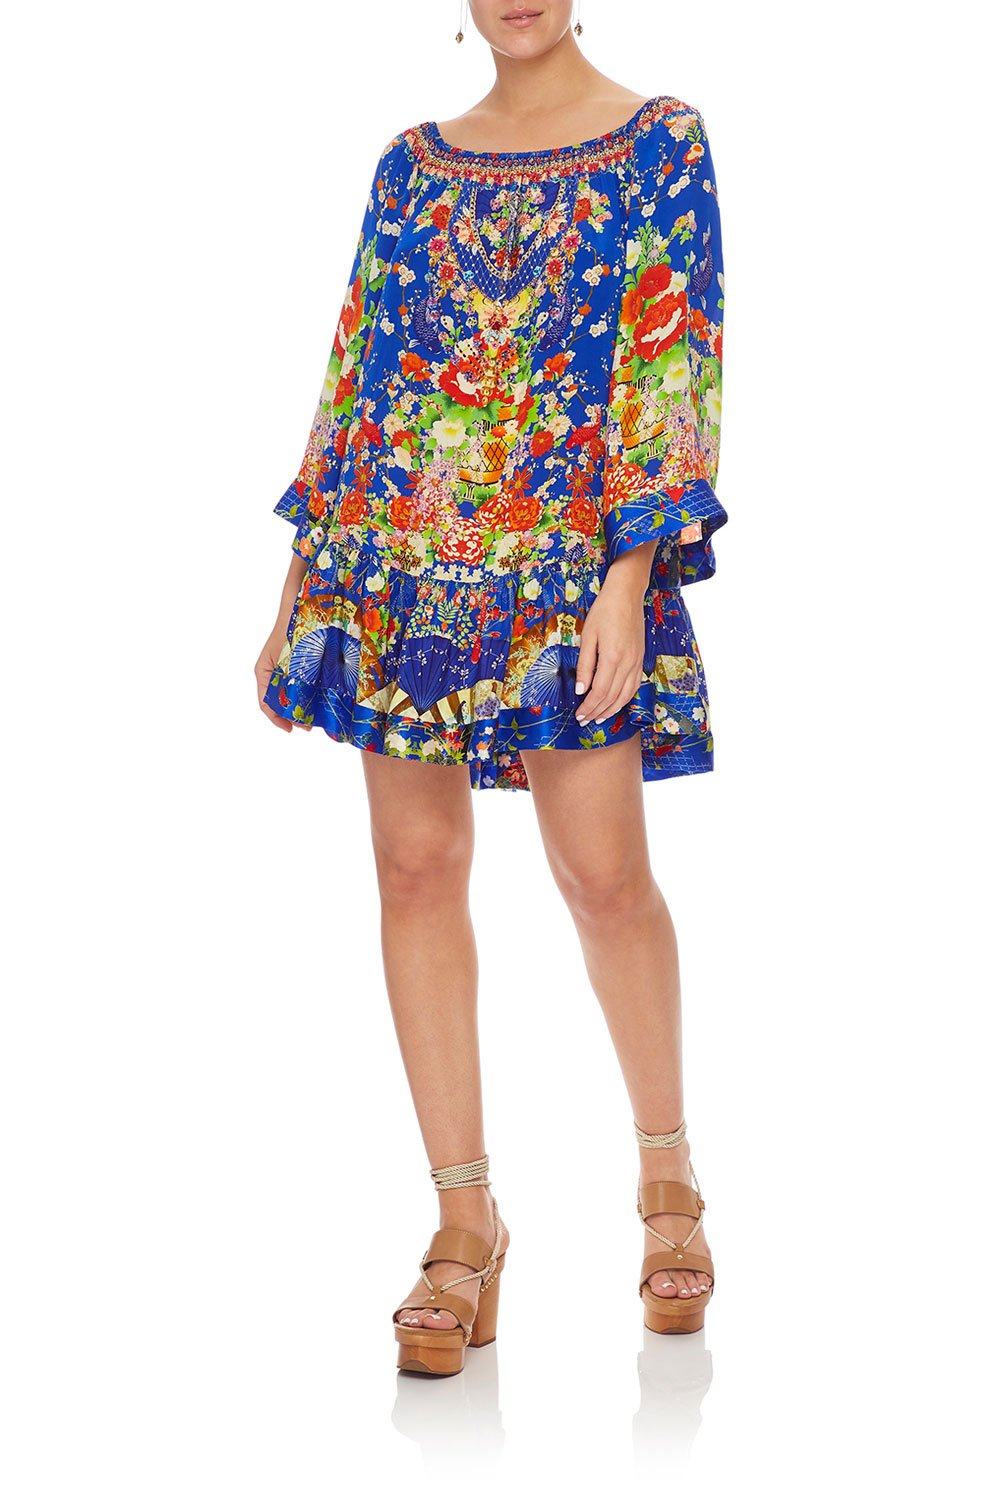 CAMILLA OFF SHOULDER FRILL HEM DRESS PLAYING KOI